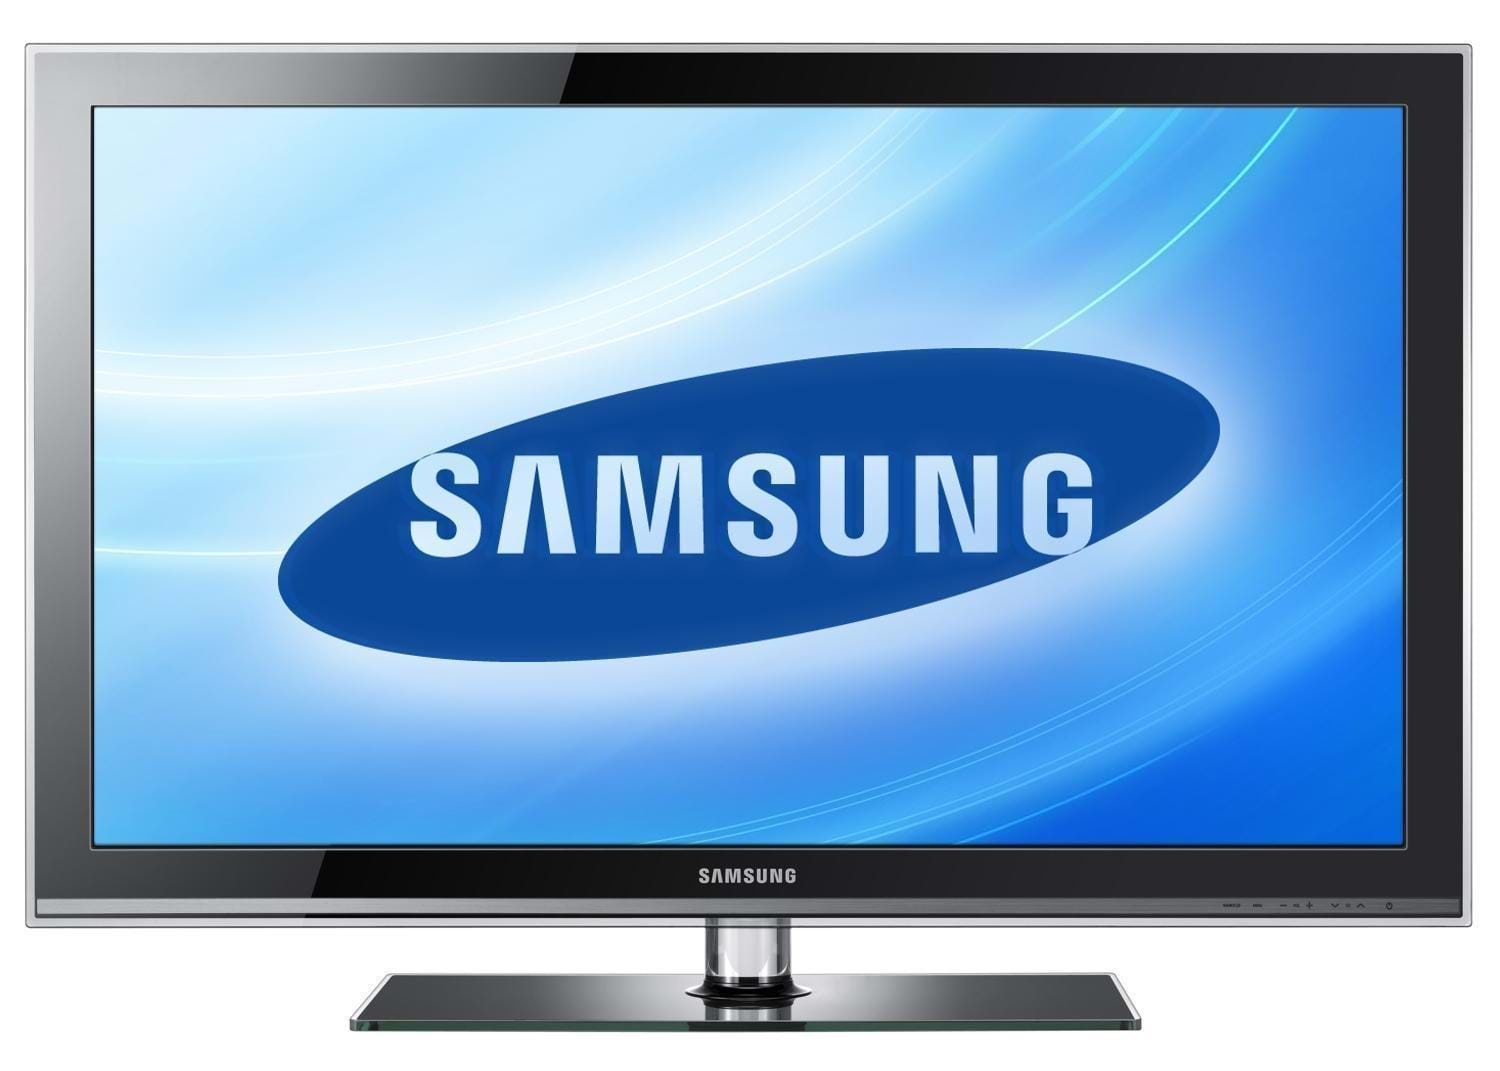 samsung 40 fladsk rms tv tv le40c675 lcd 1080p. Black Bedroom Furniture Sets. Home Design Ideas